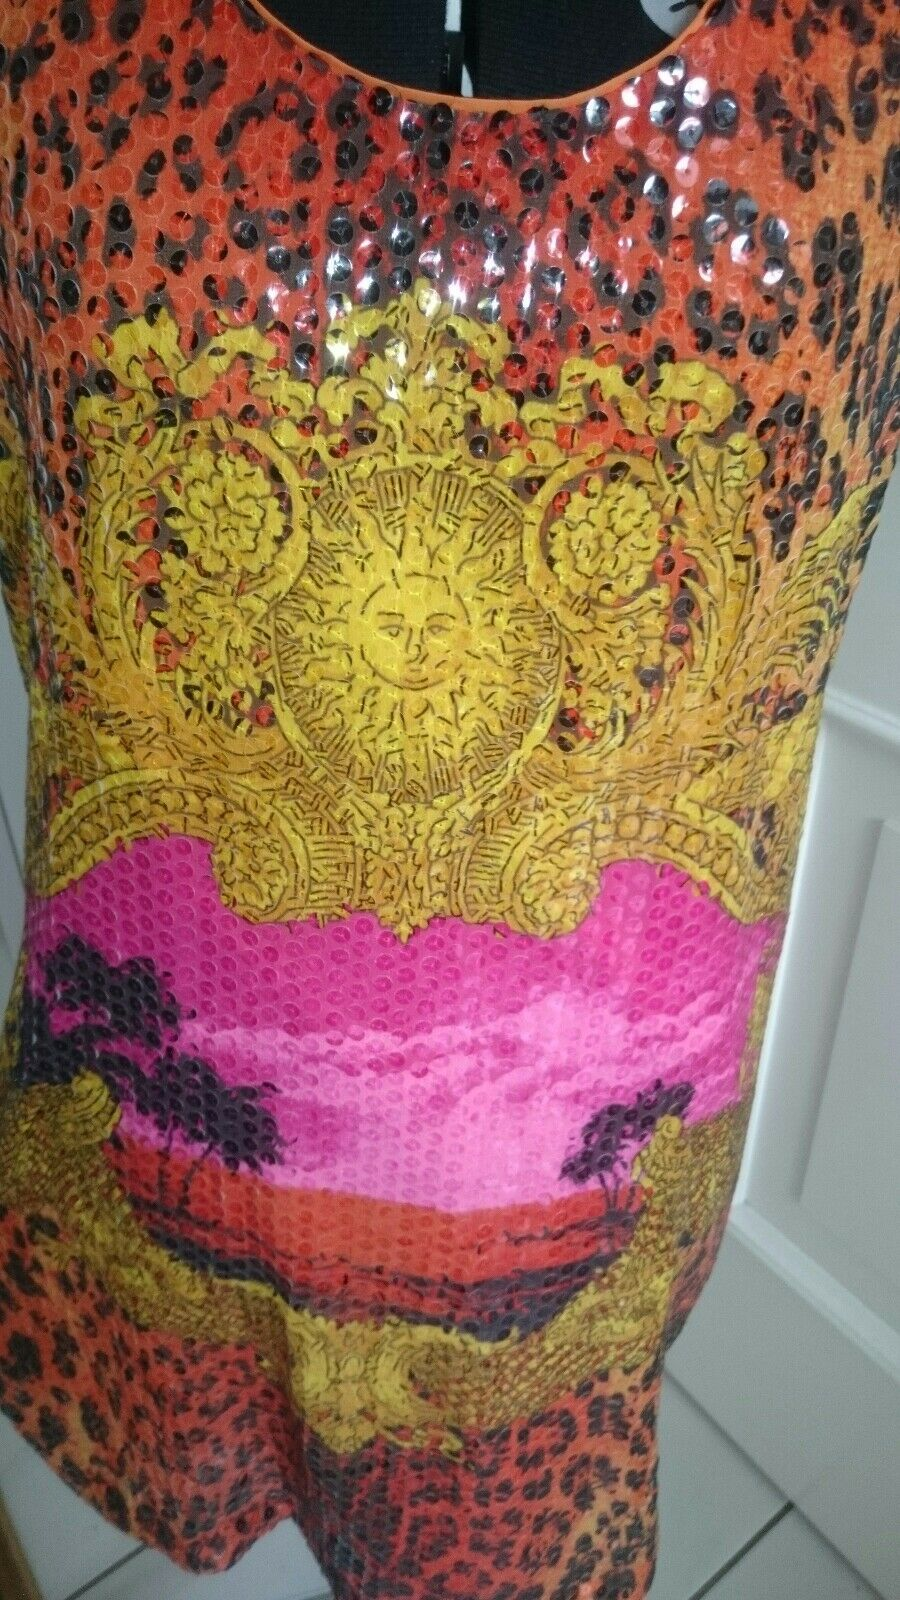 VERSACE x H&M H&M H&M Pailletten Kleid Gr. 42 Gold Leo Animalprint Orange Barock LIMITED 9db043